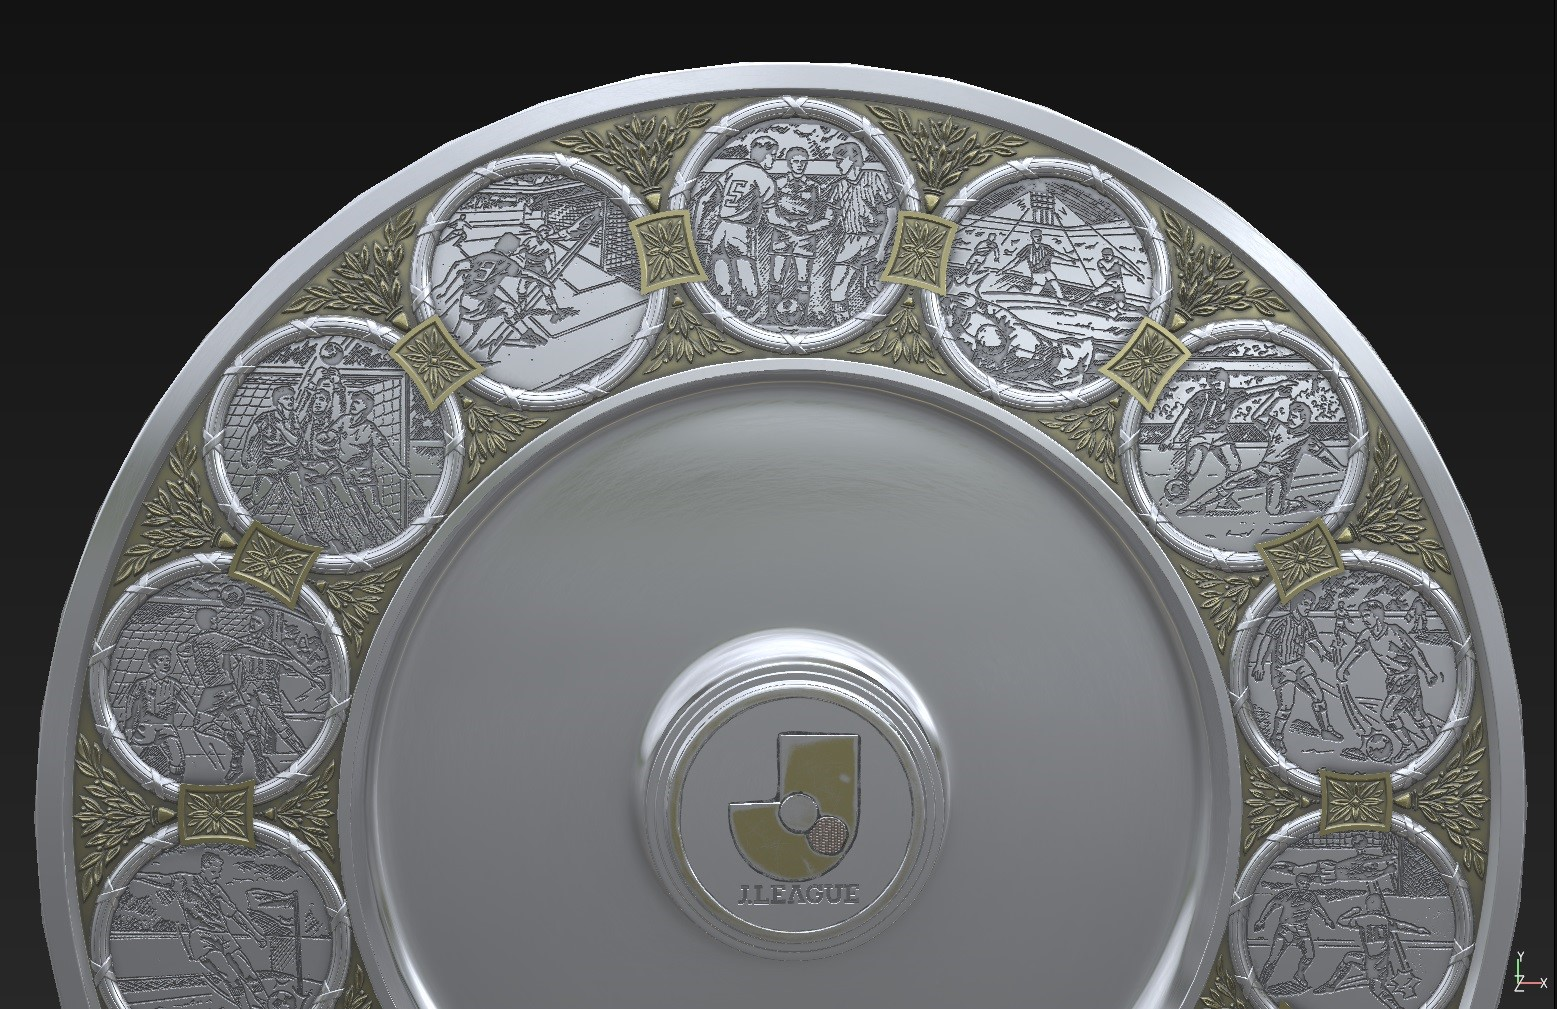 J1League_Trophy_16.jpg